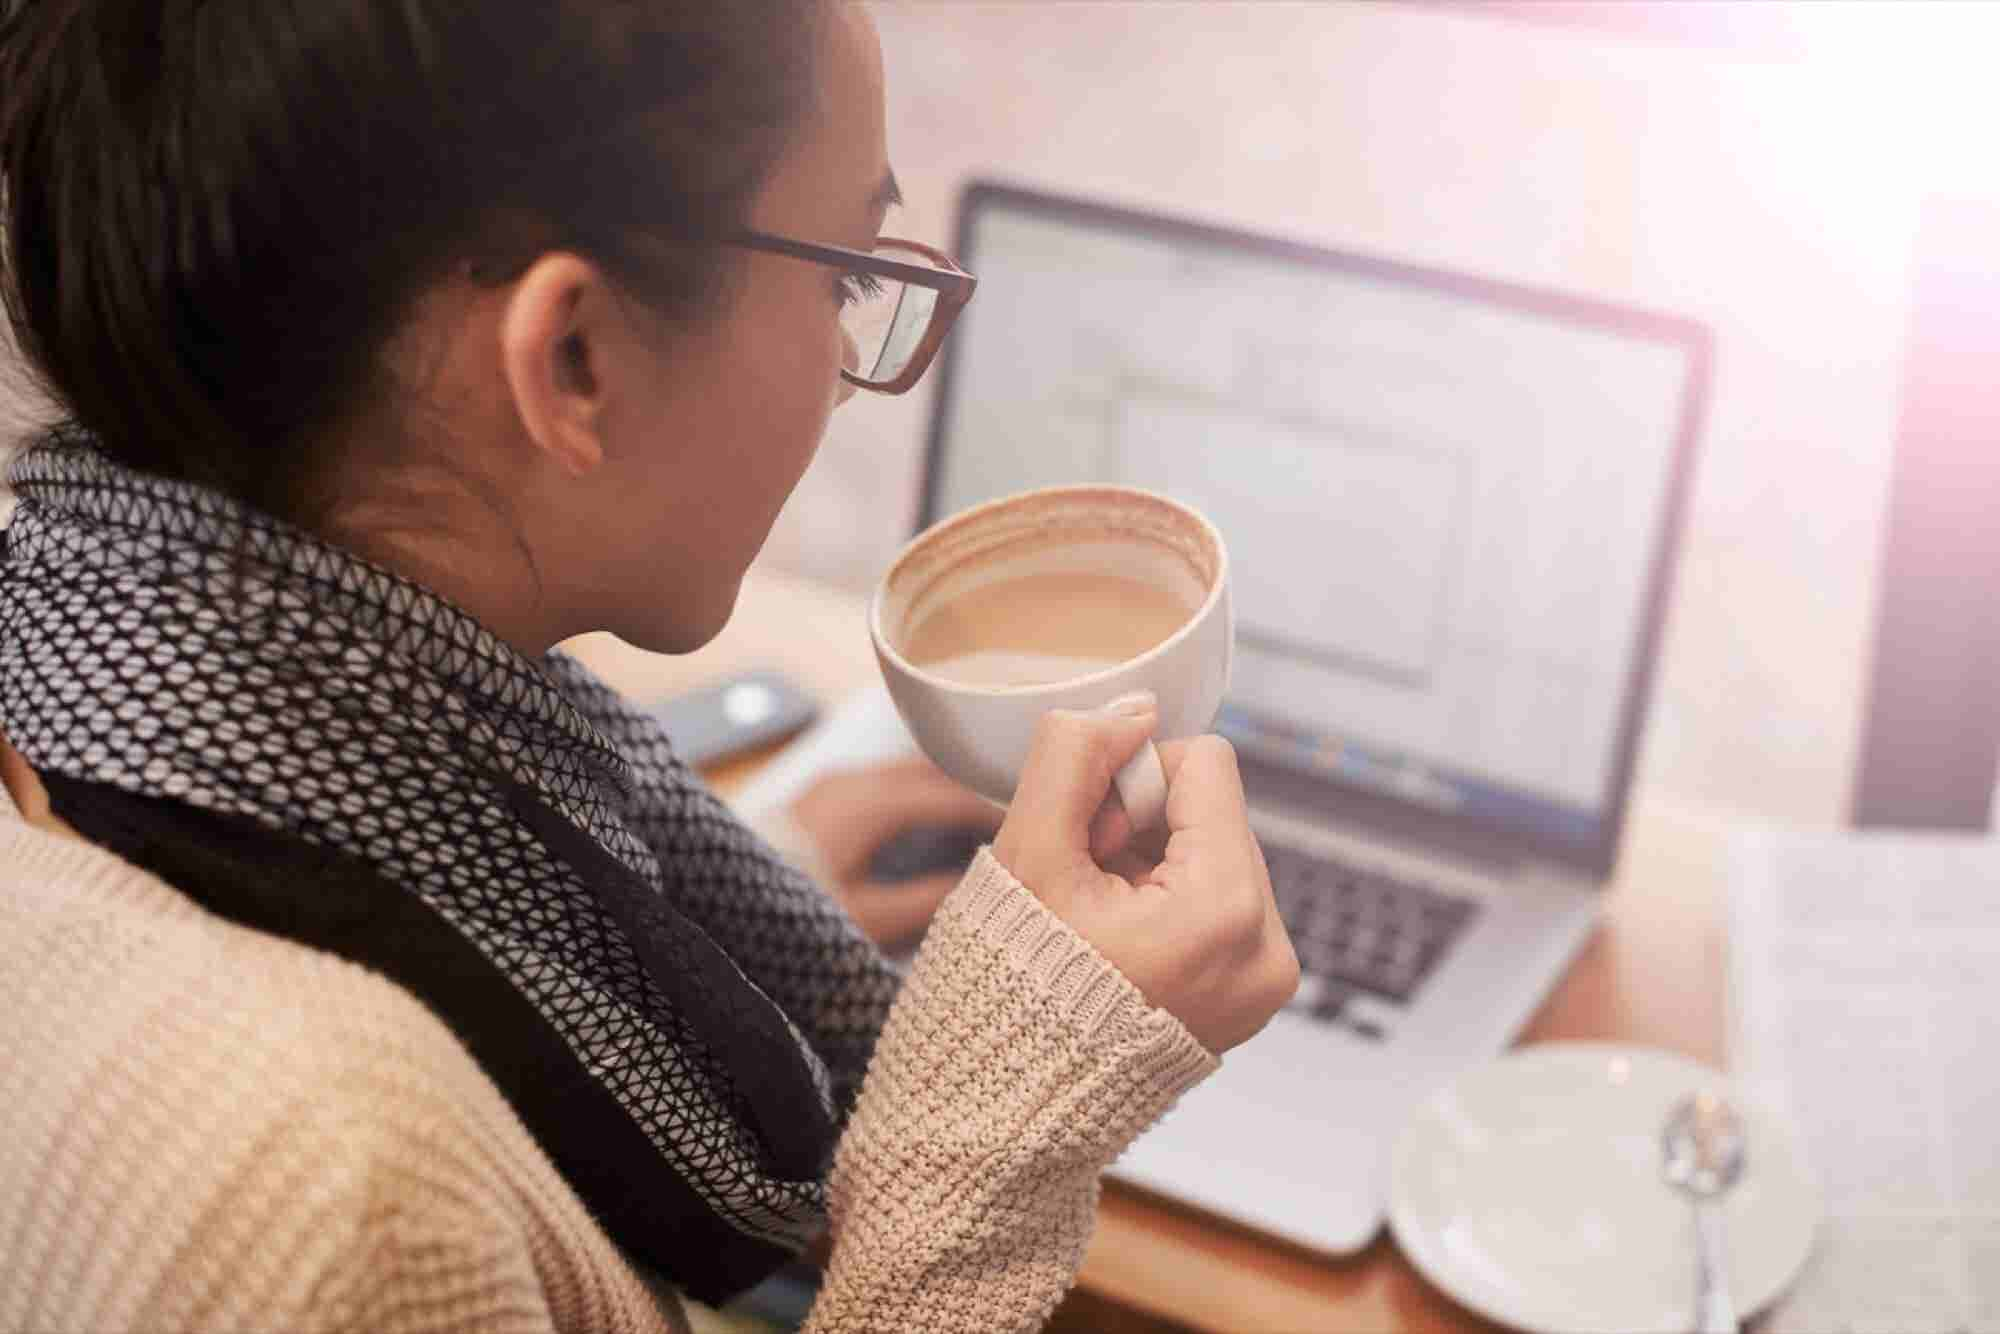 5 Ways to Make Working From Home More Rewarding